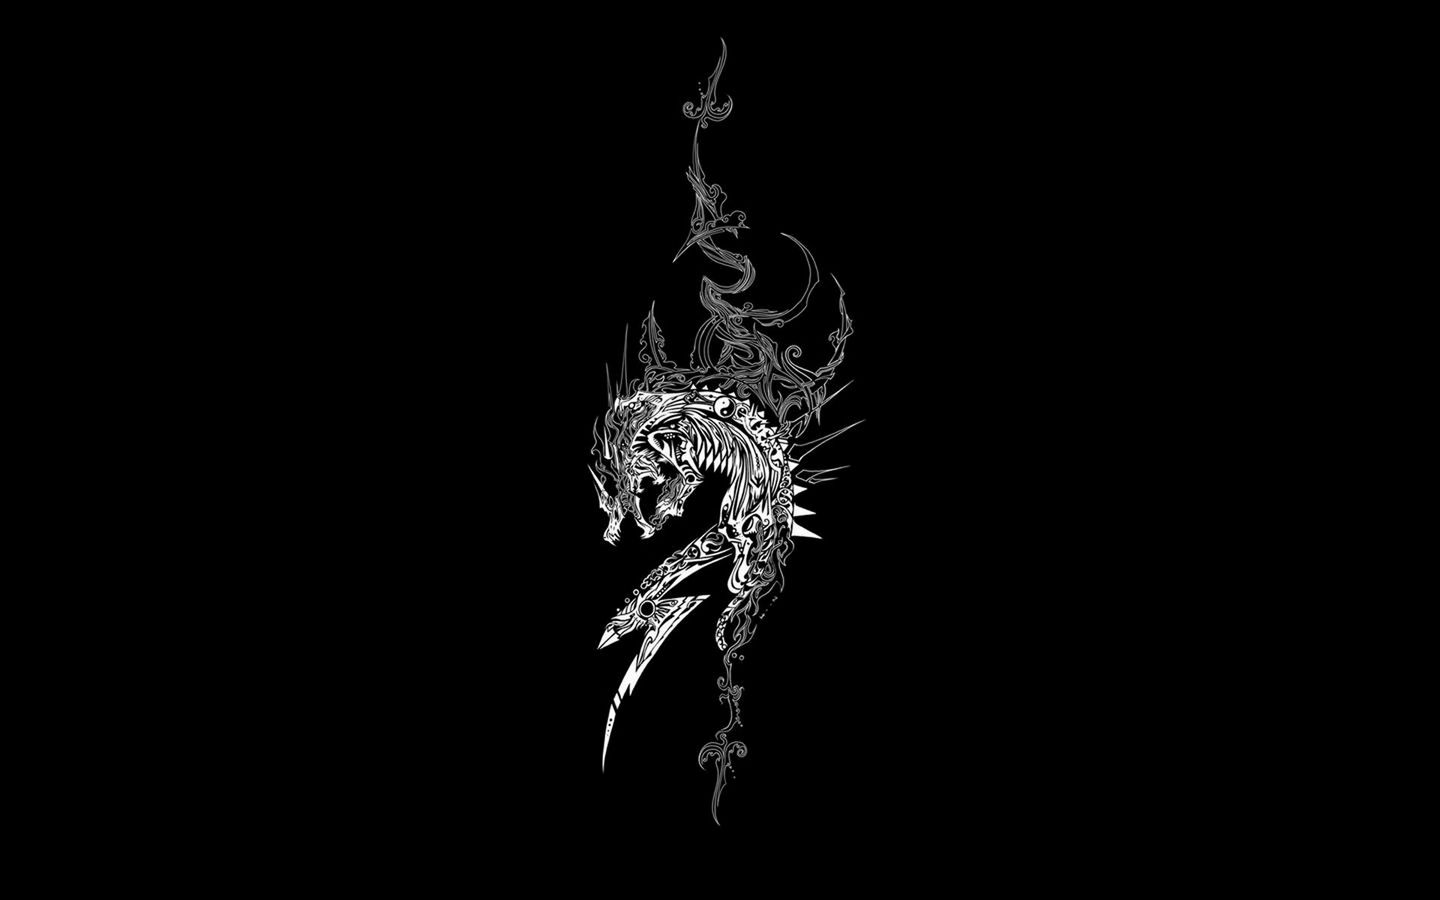 Dark Dragon Wallpapers Full Hd Firefox Wallpaper Free Download